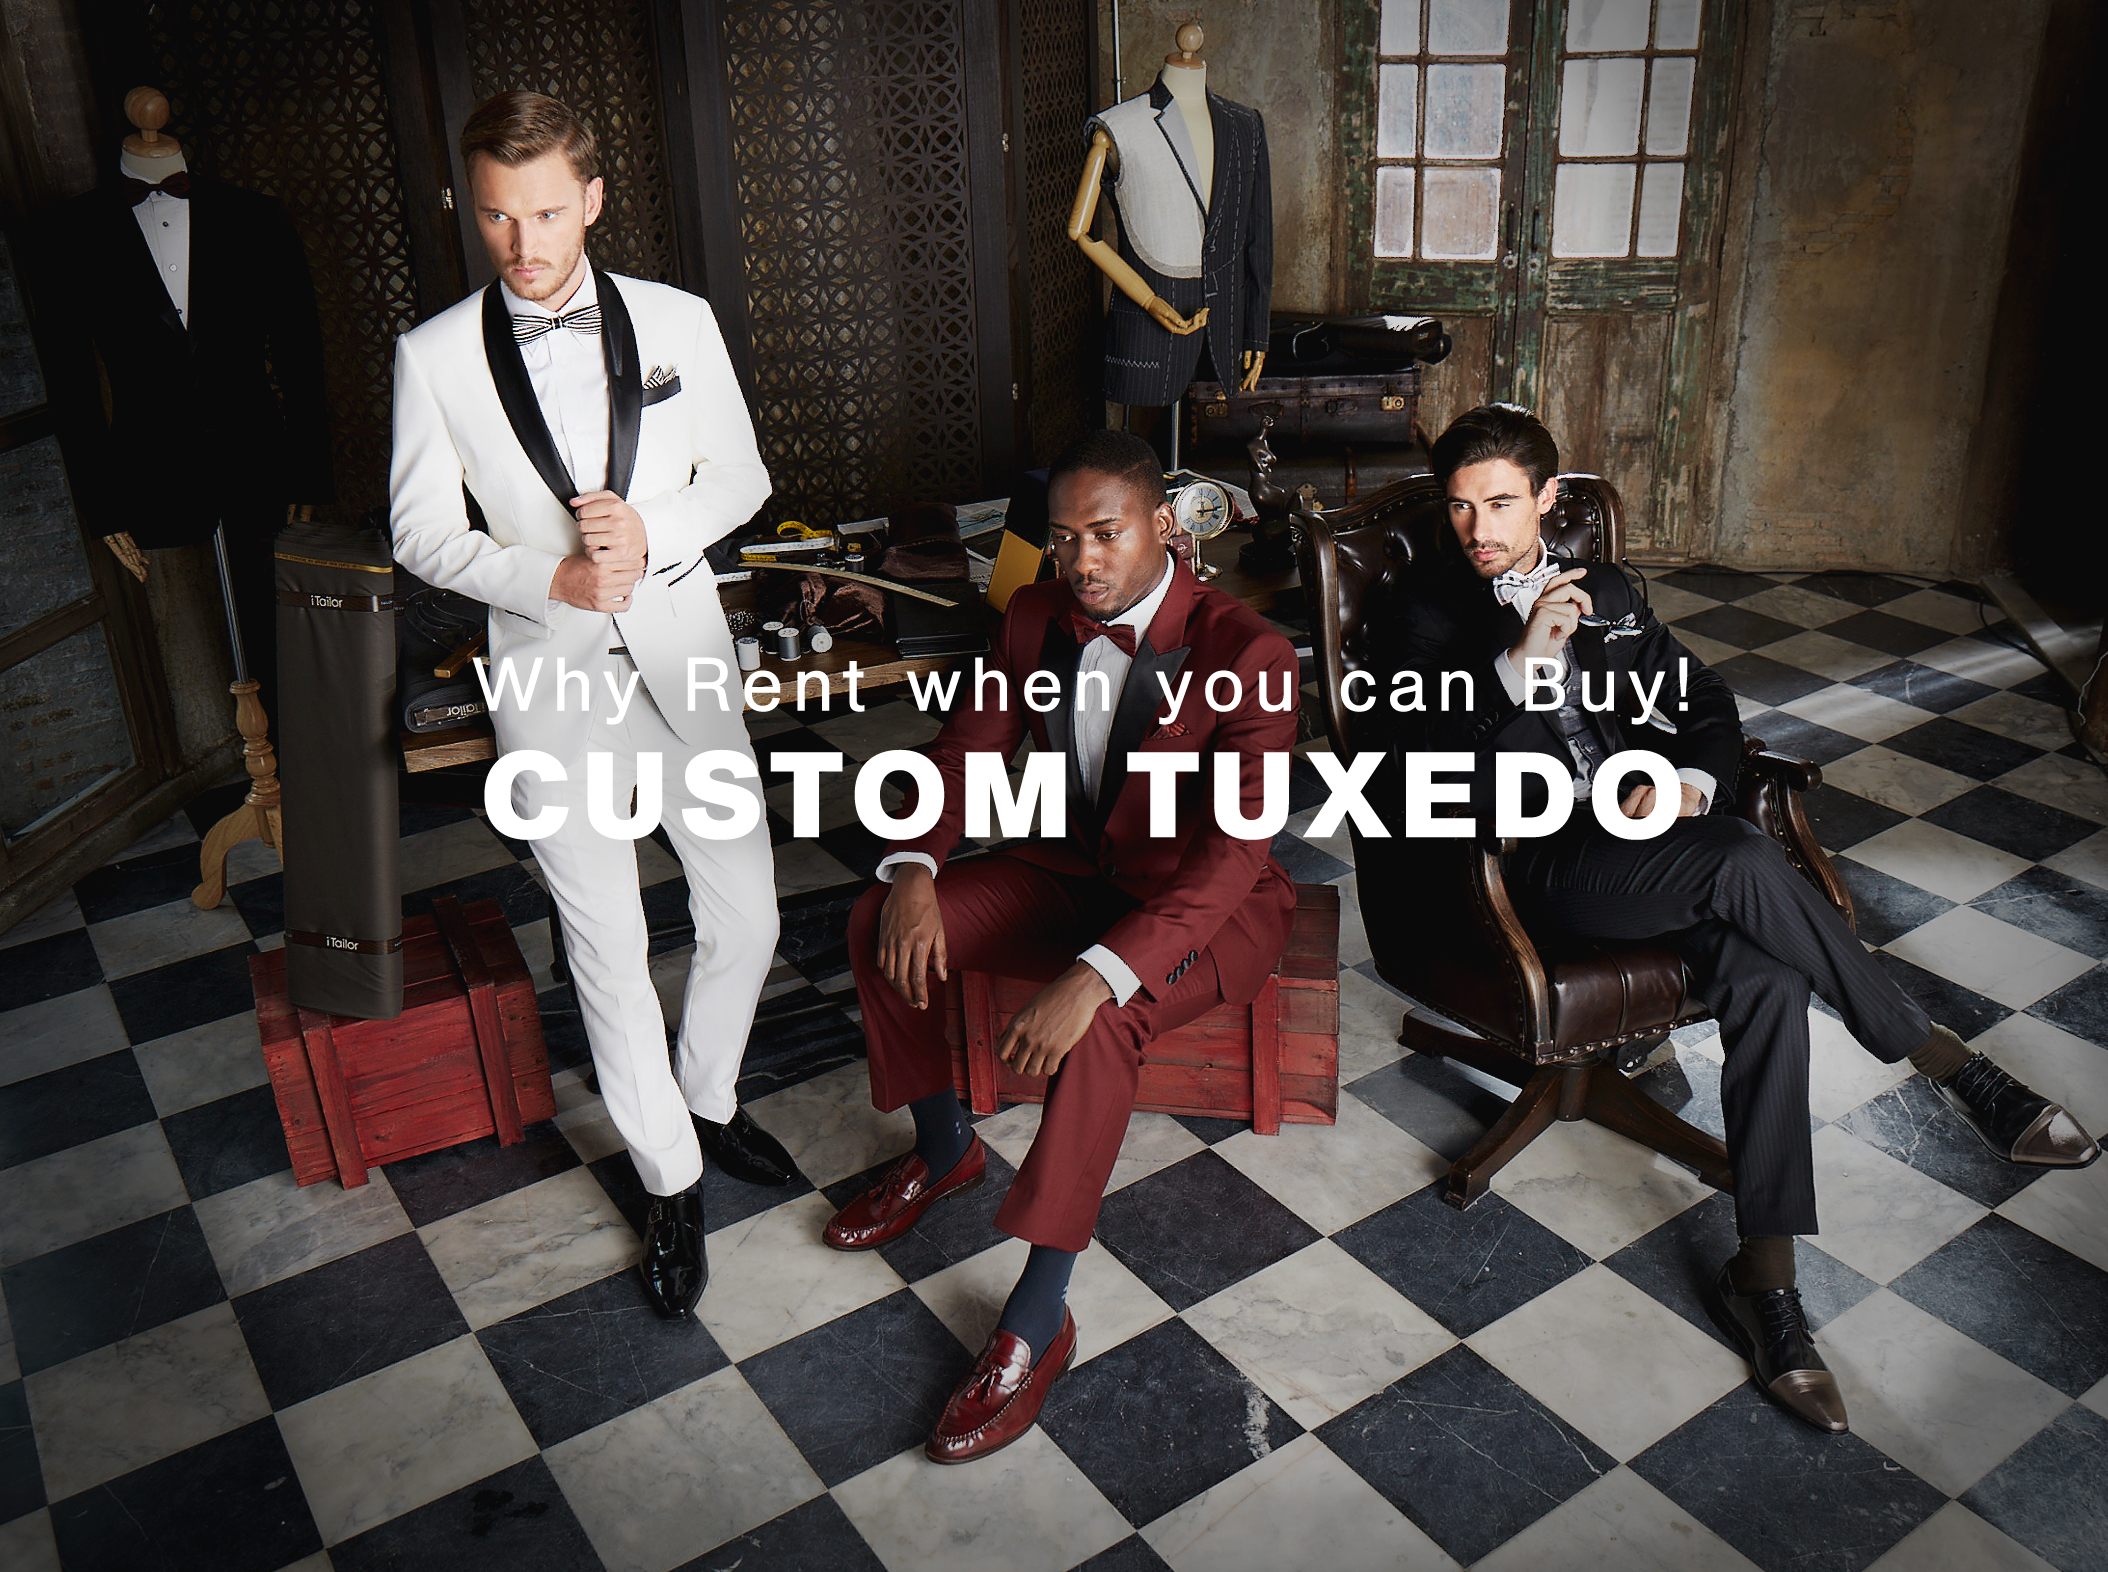 Custom Tuxedos for $179. Why Rent when you can Buy!